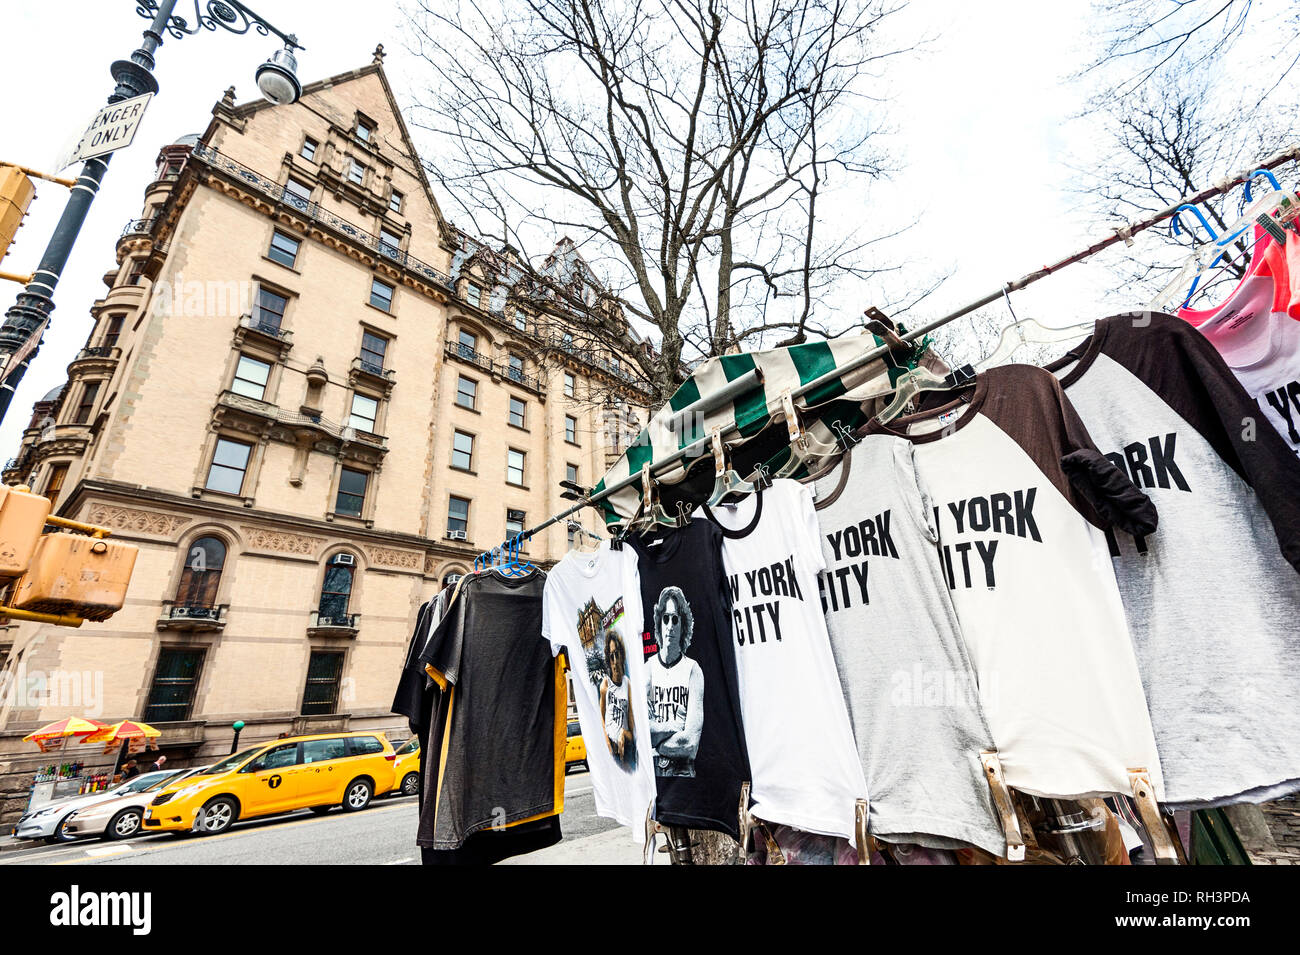 Dakota Building And John Lennon T Shirts New York City Stock Photo Alamy